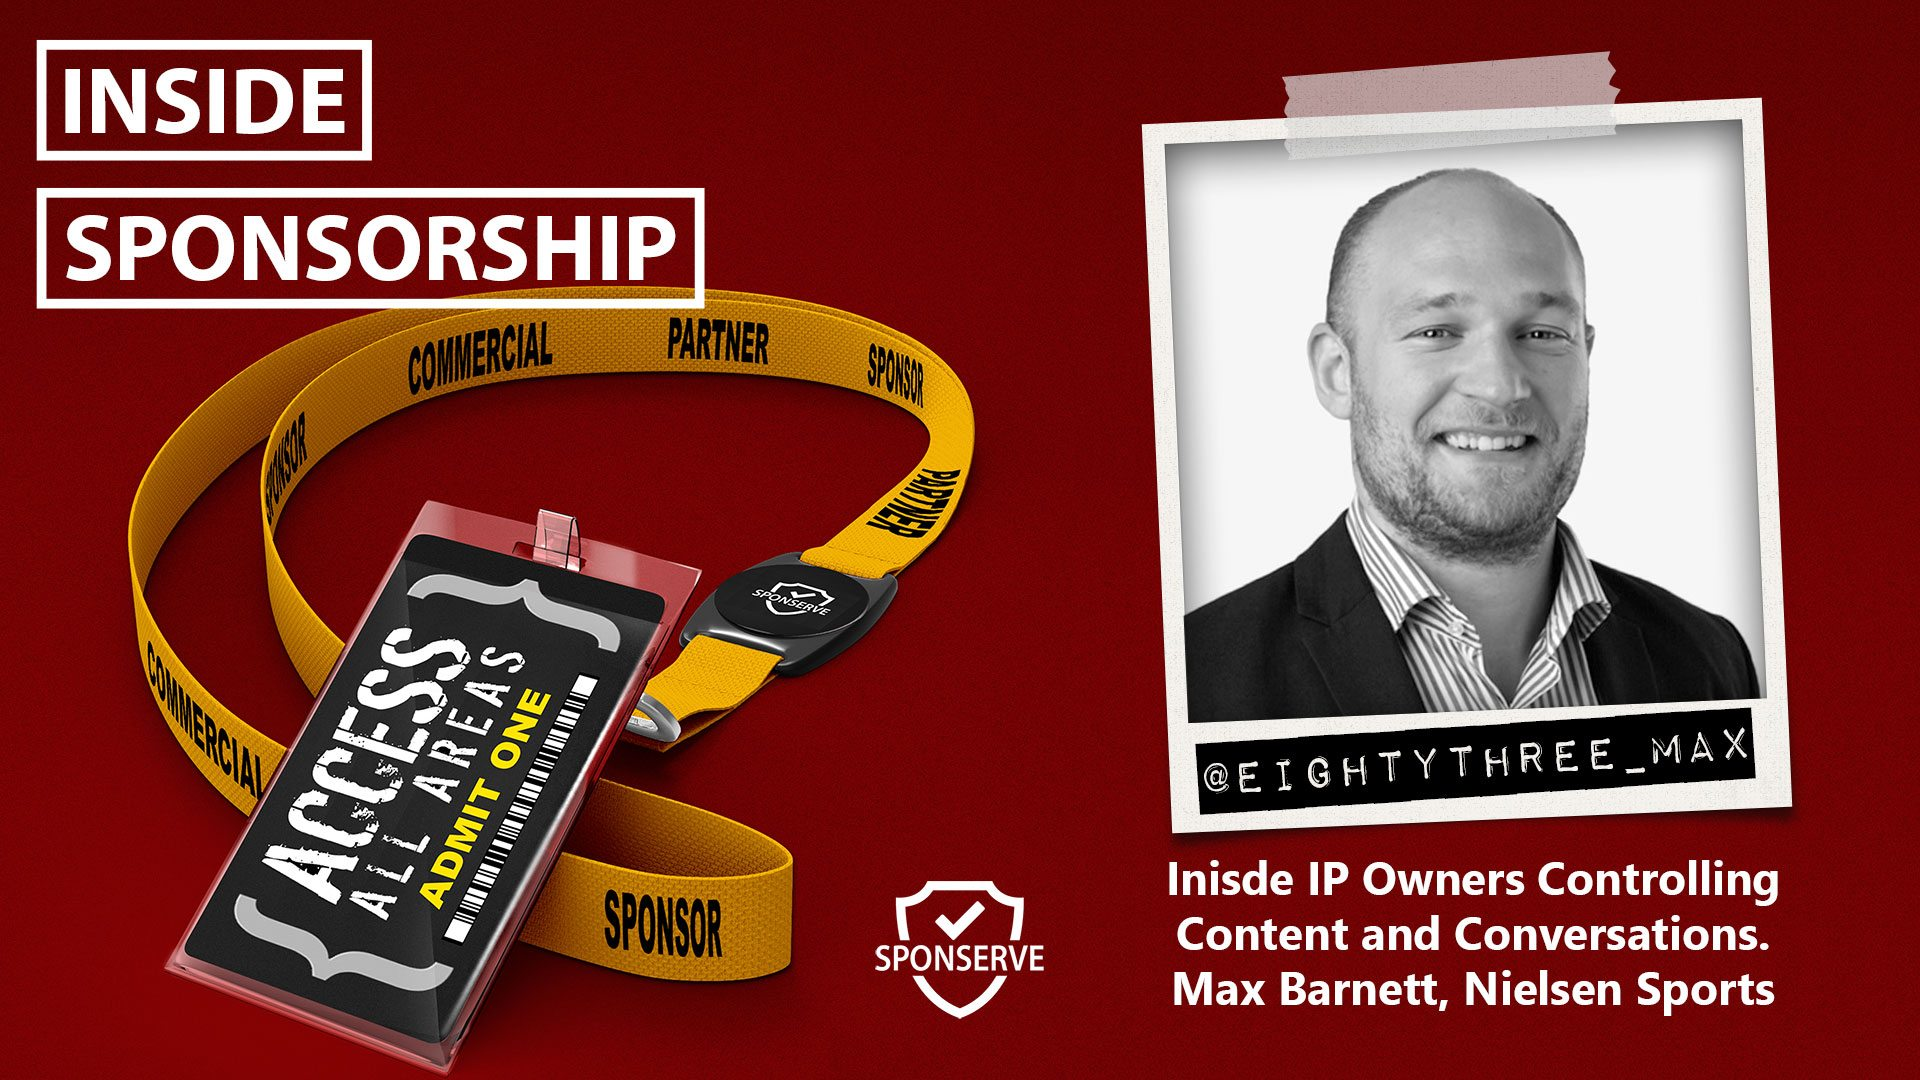 IP Owners Controlling Content. Max Barnett, Nielsen Sports